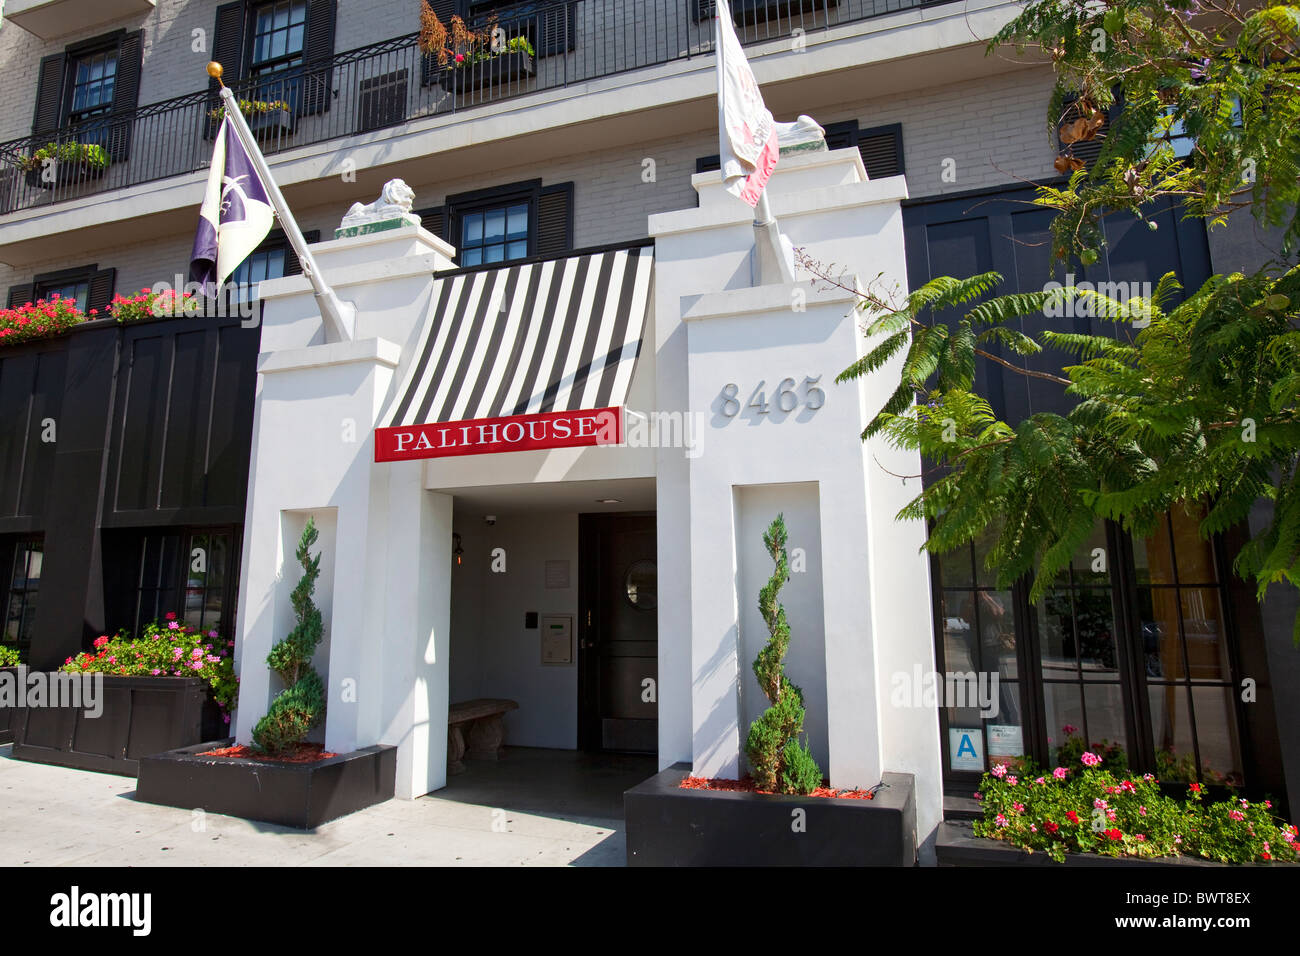 West Hollywood Stock Photos & West Hollywood Stock Images ...